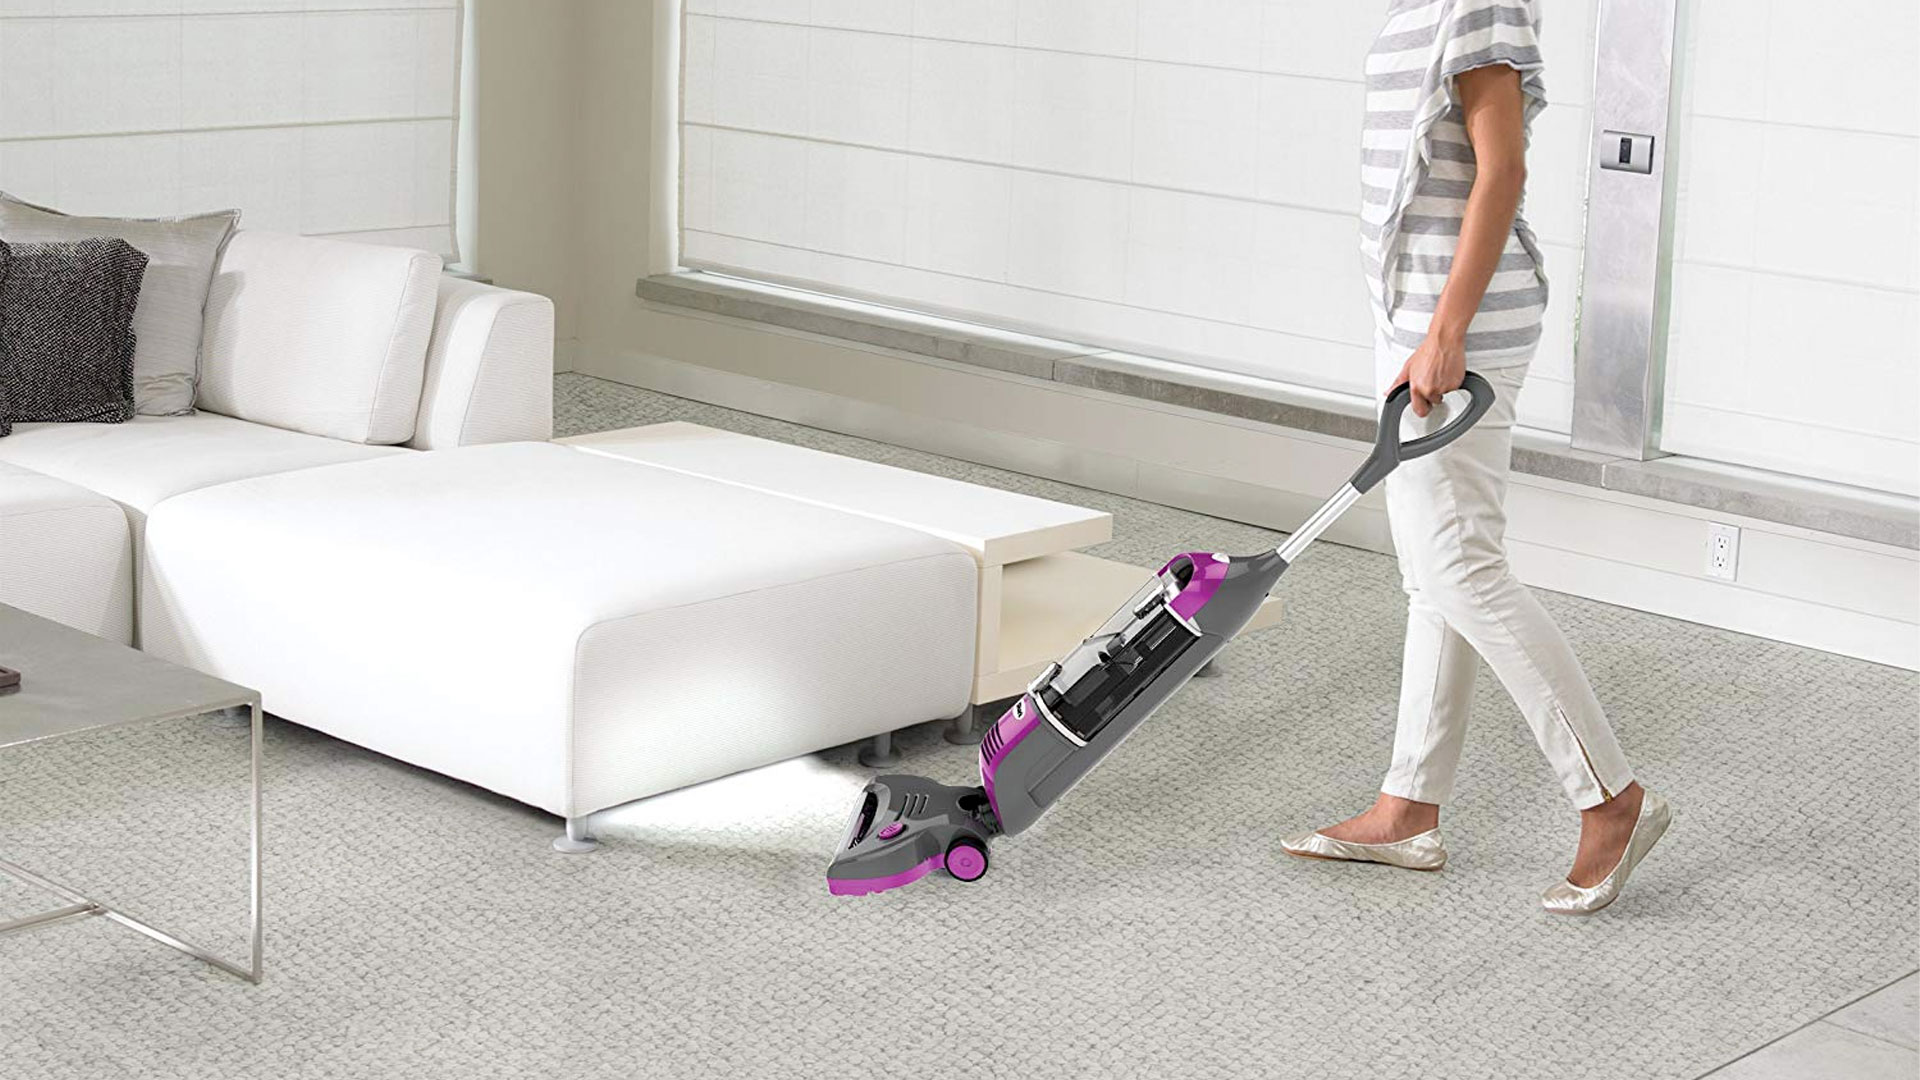 Clean your house w/ Shark's battery-powered Freestyle Pro vacuum: $40.50 (Refurb, Orig. $130)